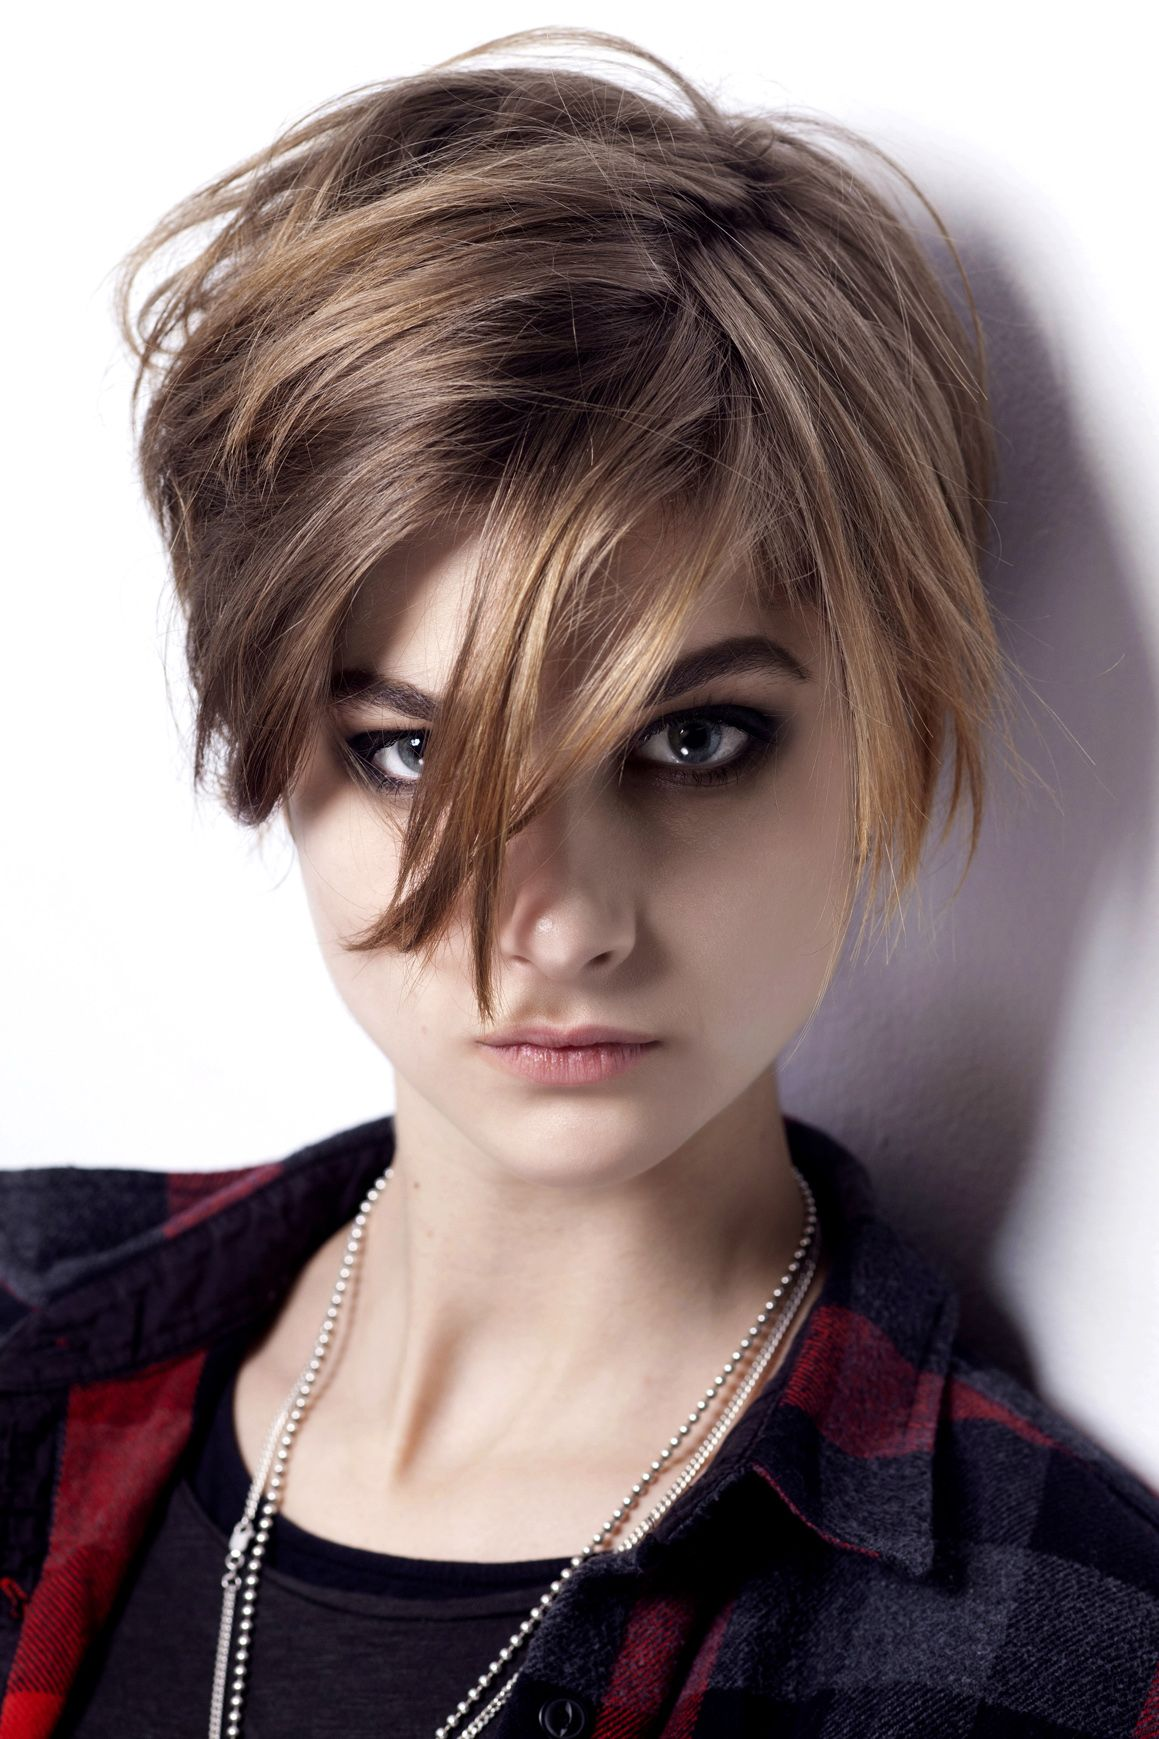 images 50 of the Hottest Summer Hairstyles For ShortHair